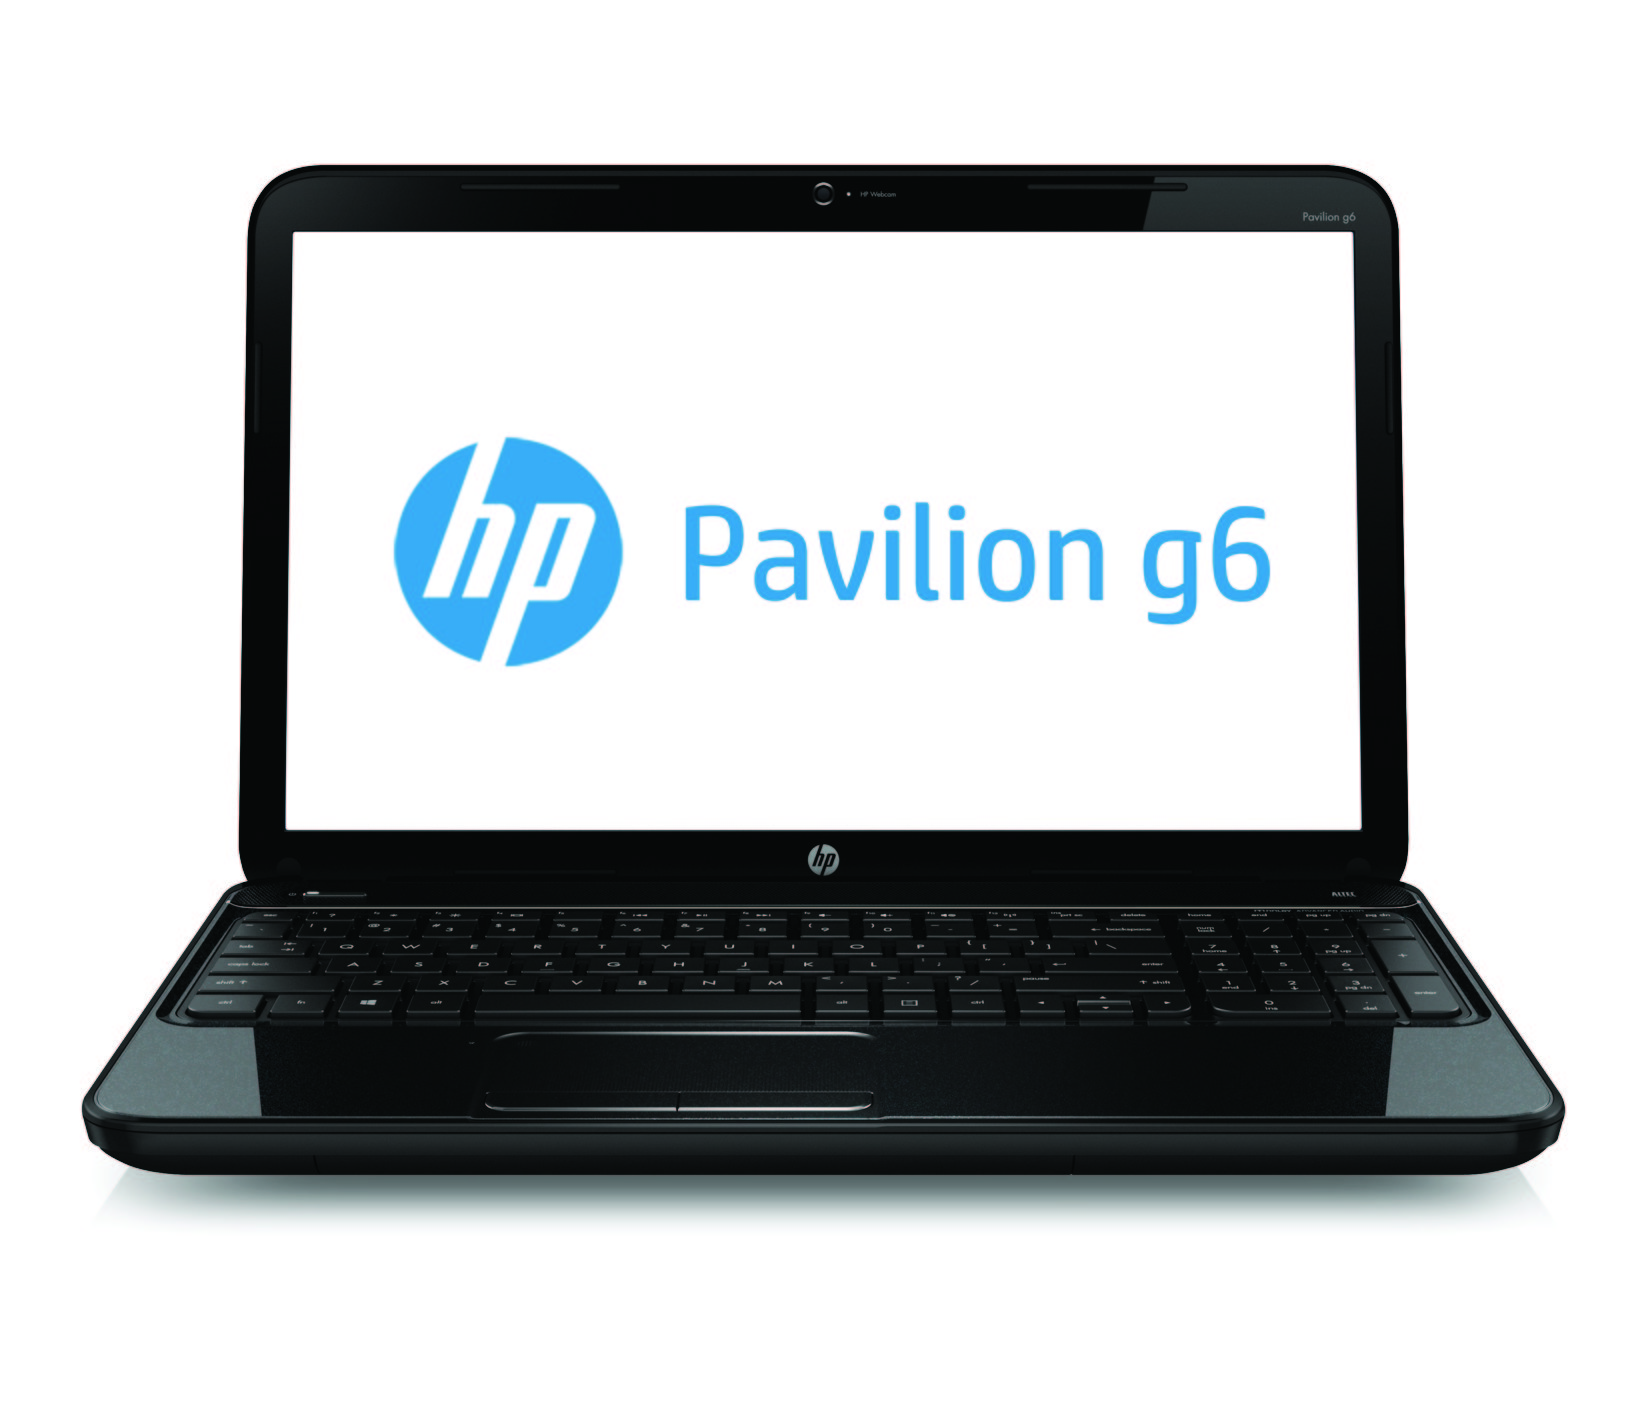 hp pavilion g6 2380sa notebook intel core i5 3230m. Black Bedroom Furniture Sets. Home Design Ideas